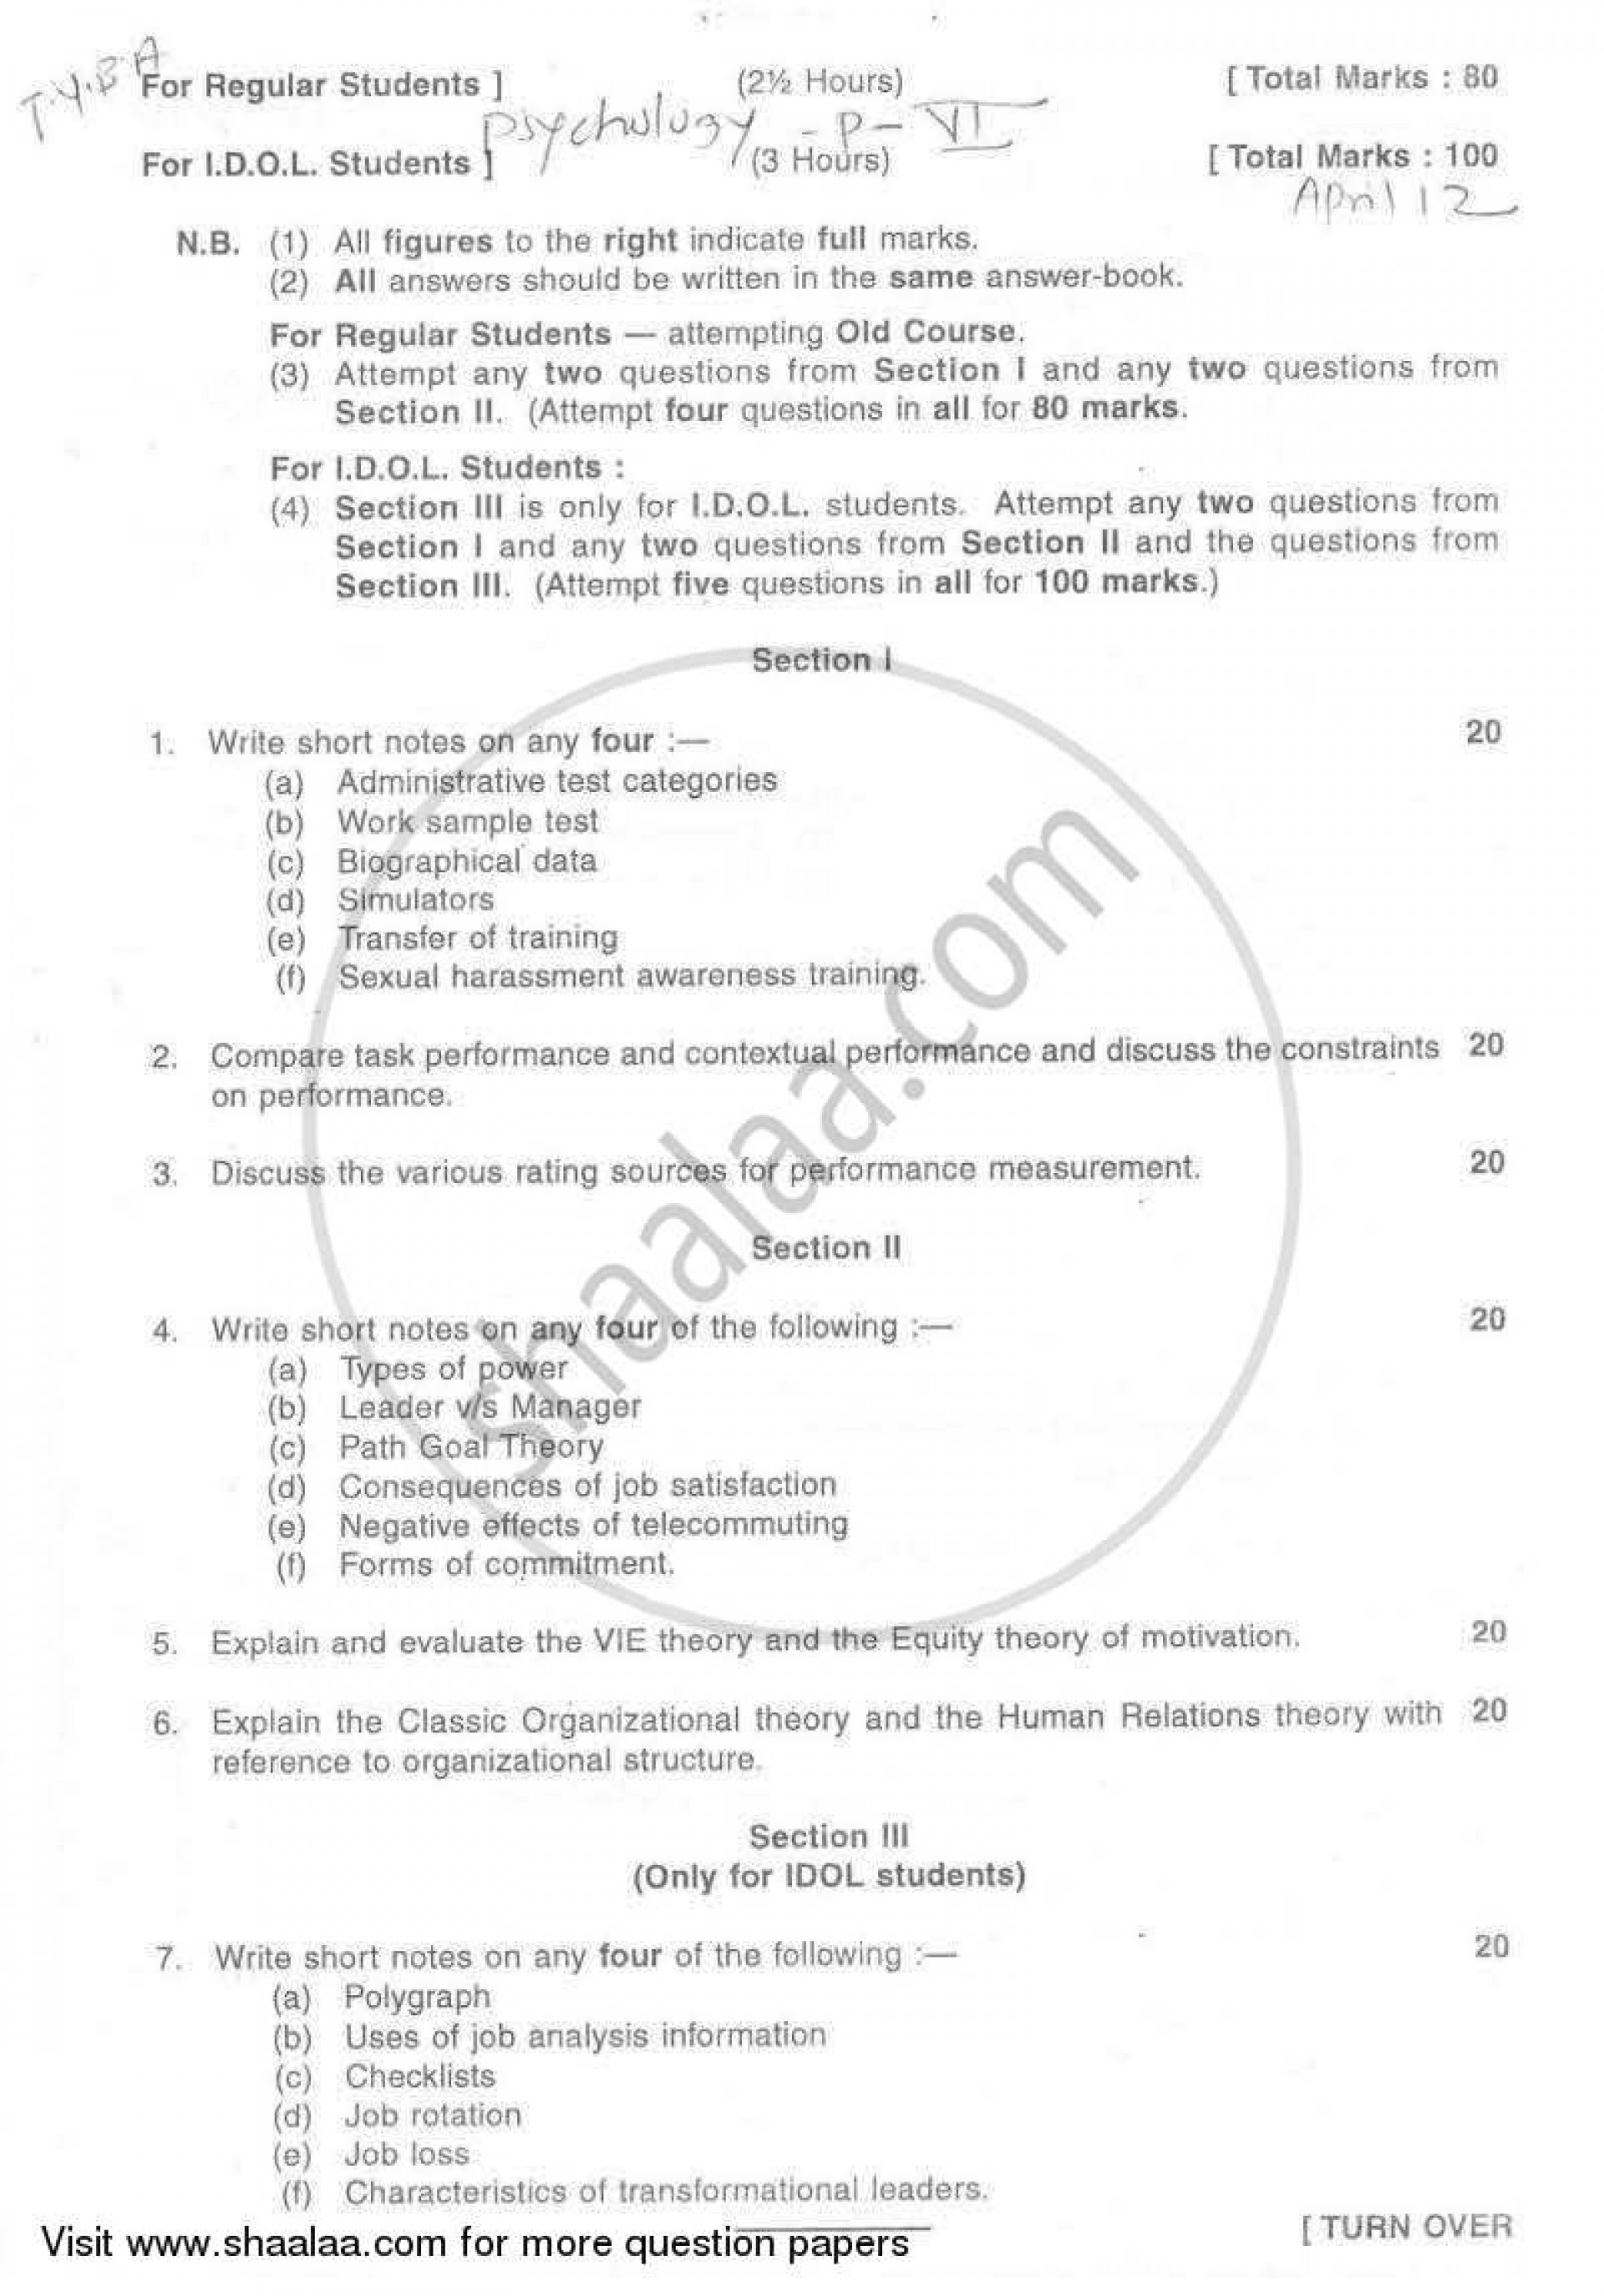 017 Psychologyearch Paper On Dreams University Of Mumbai Bachelor Industrial Organizational T Y Yearly Pattern Semester Tyba 2011 29a03925dfc524f2aa4cb10e4d3da996a Singular Psychology Research Topics 1920